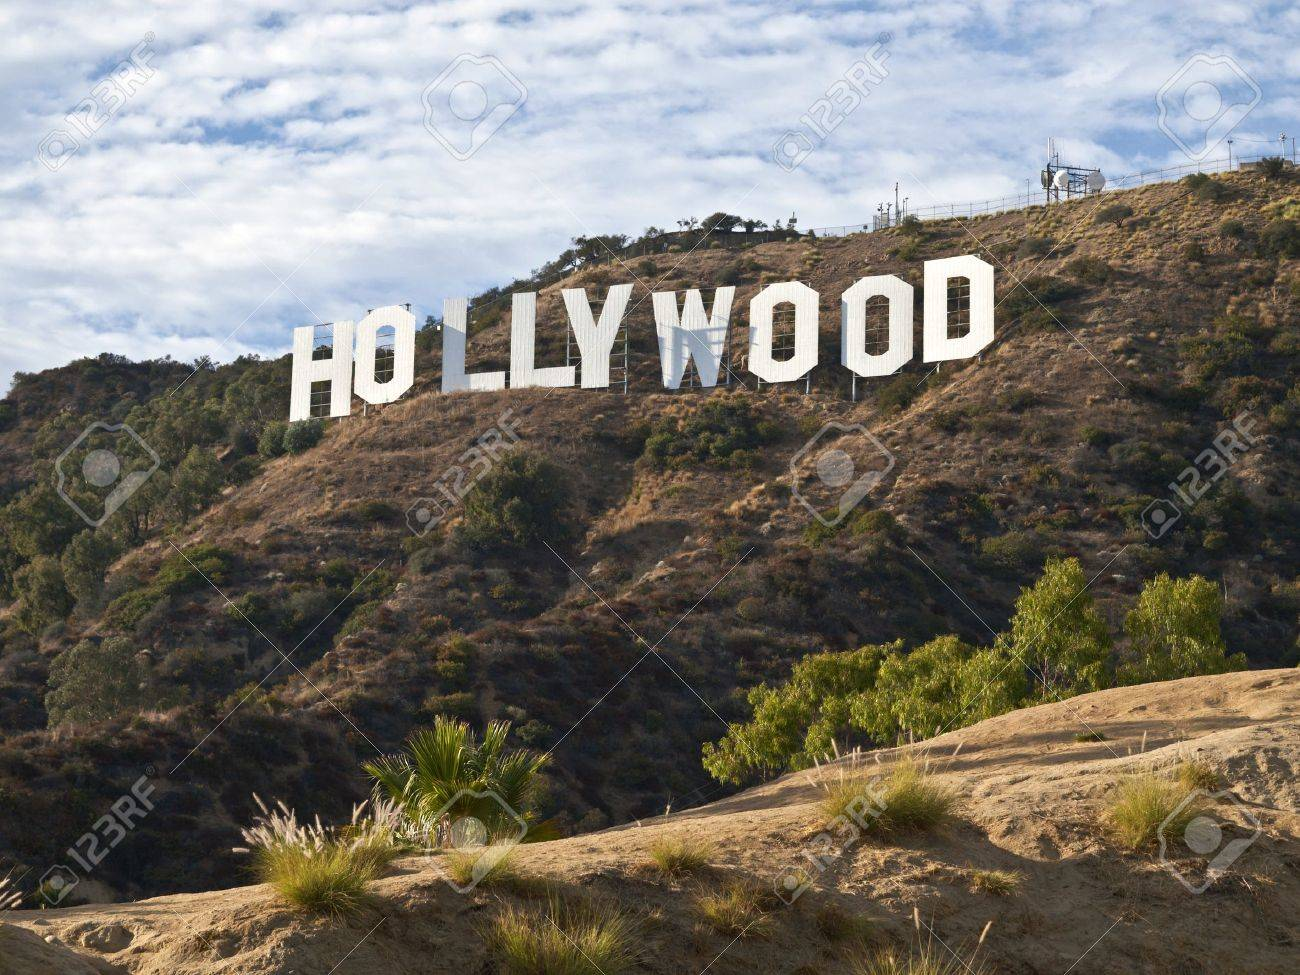 HOLLYWOOD CALIFORNIA - SEPTEMBER 29:  Hugh Hefner donates money to the Hollywood sign trust to purchase and protect 138 acres behind the sign from development, on September 29, 2010 in Los Angeles, California.   Stock Photo - 7880965